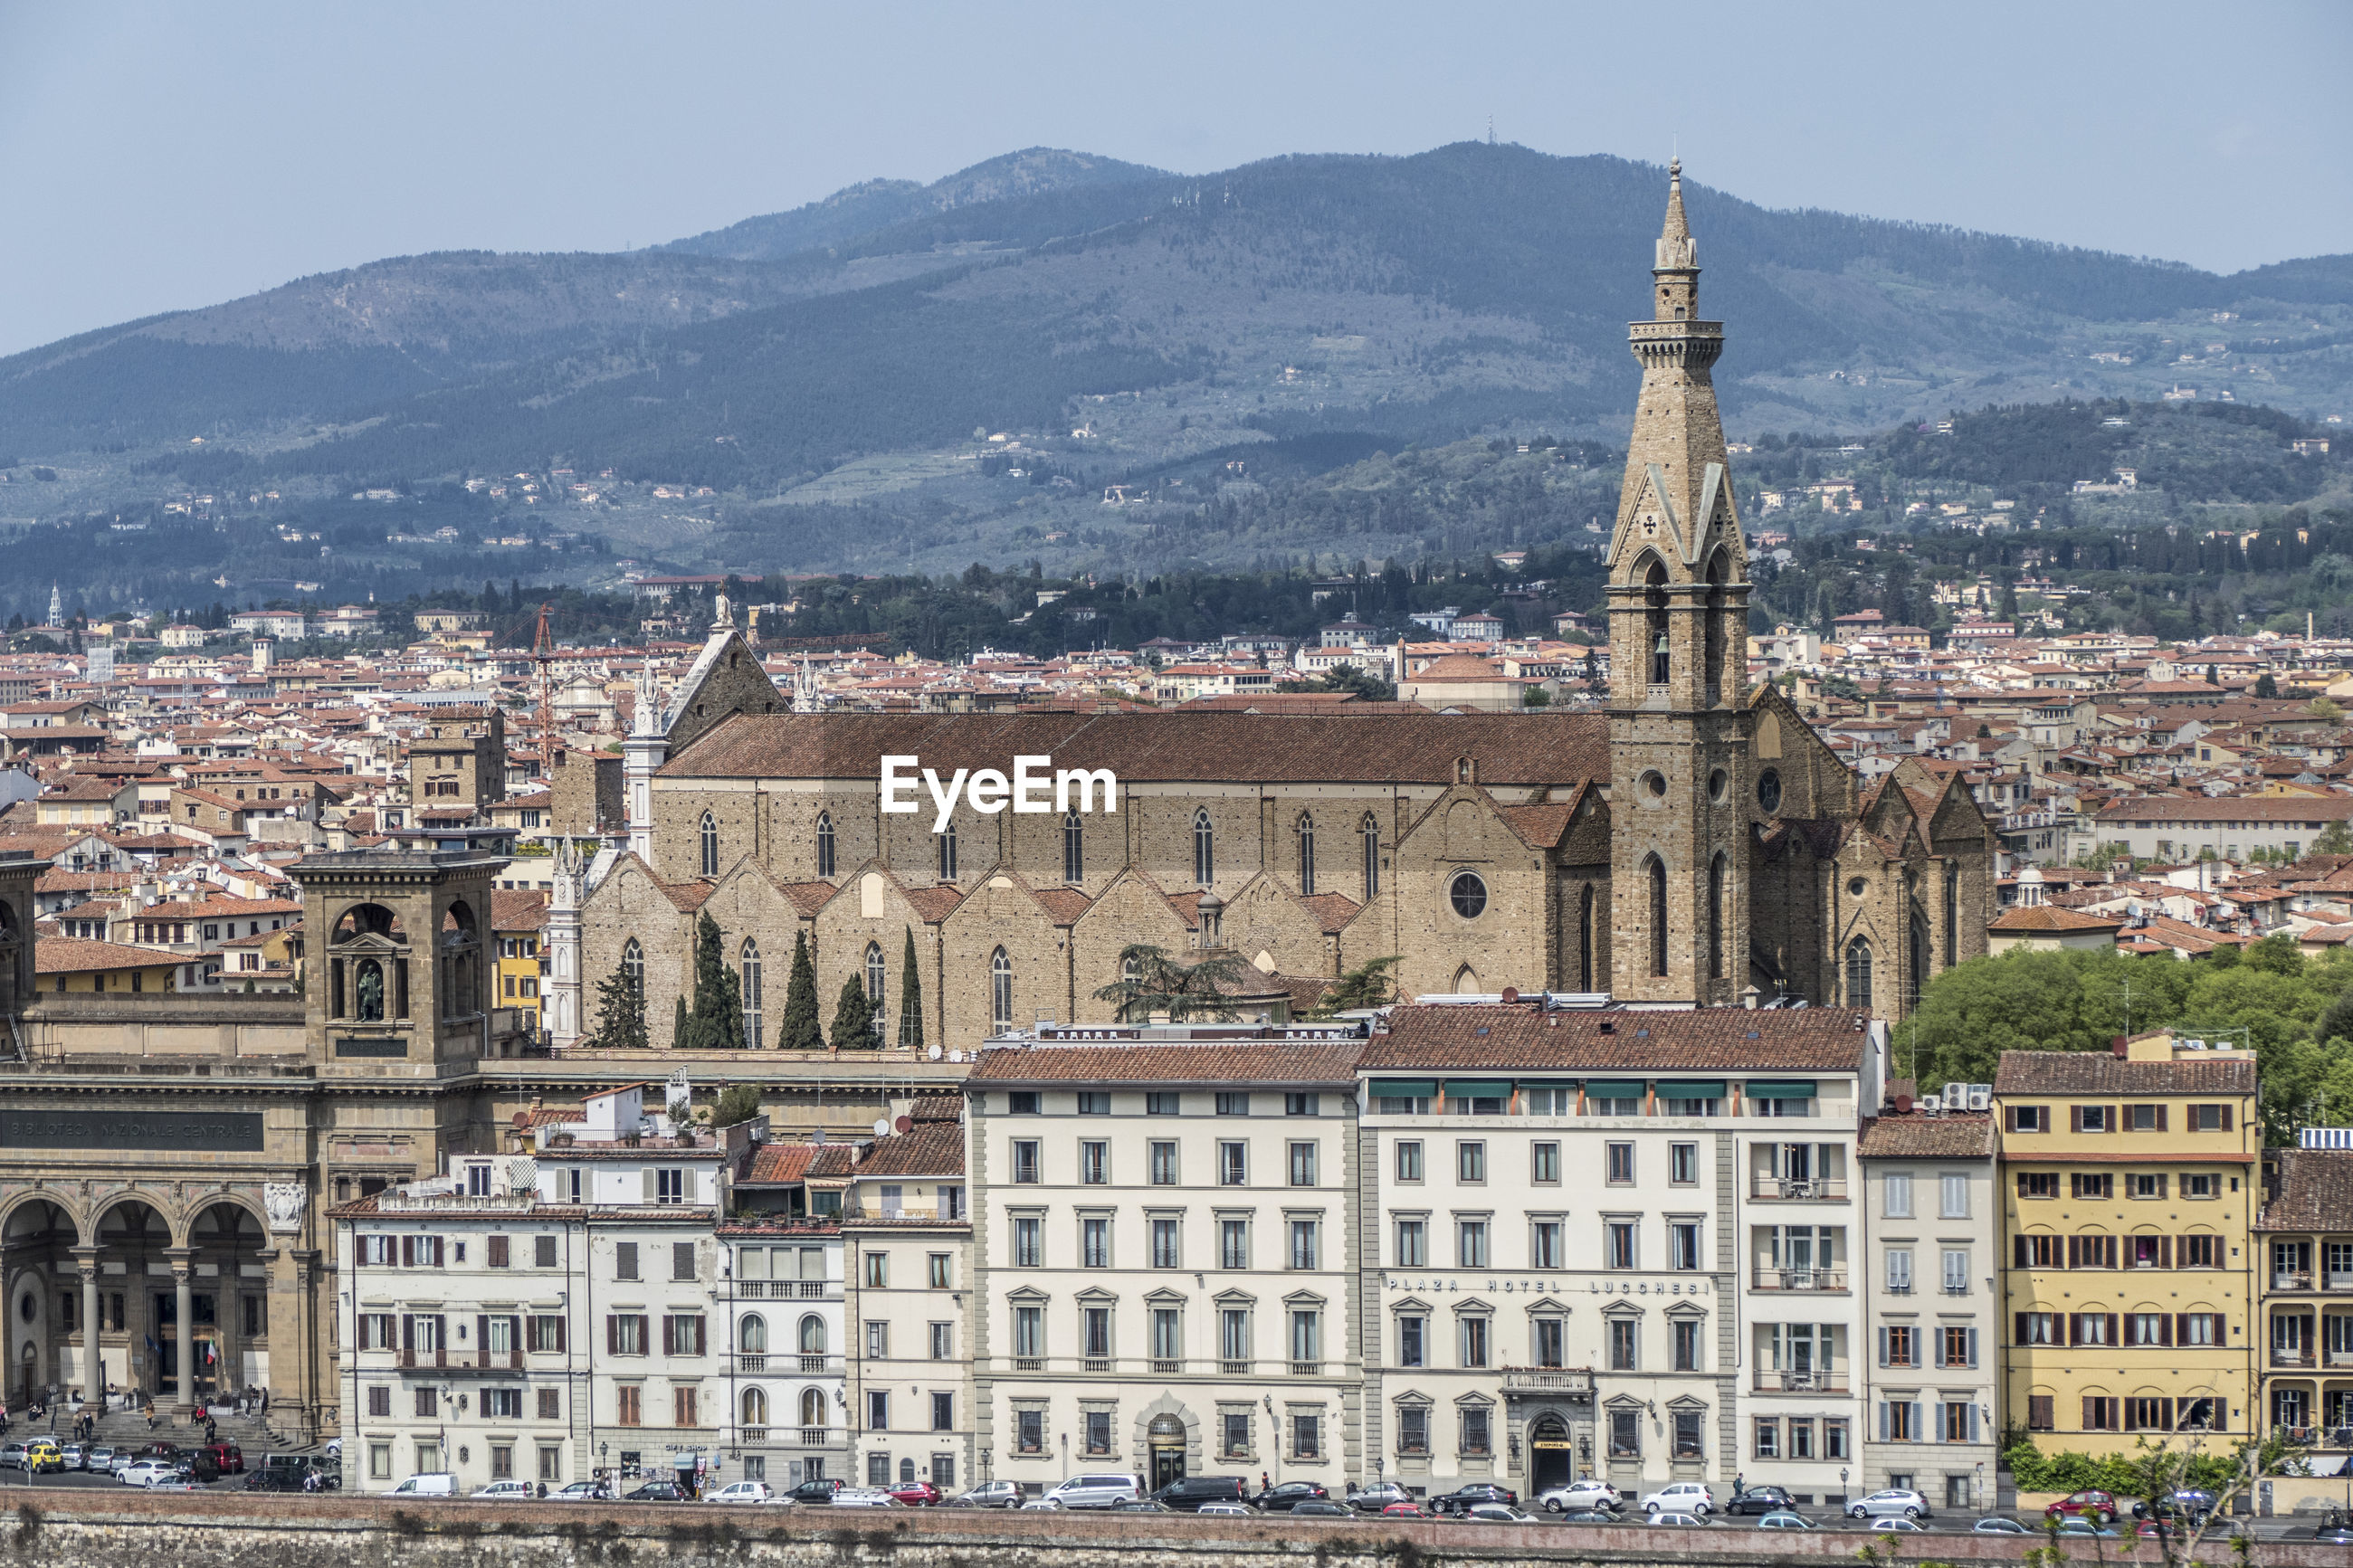 Aerial view of the basilica of santa croce in florence